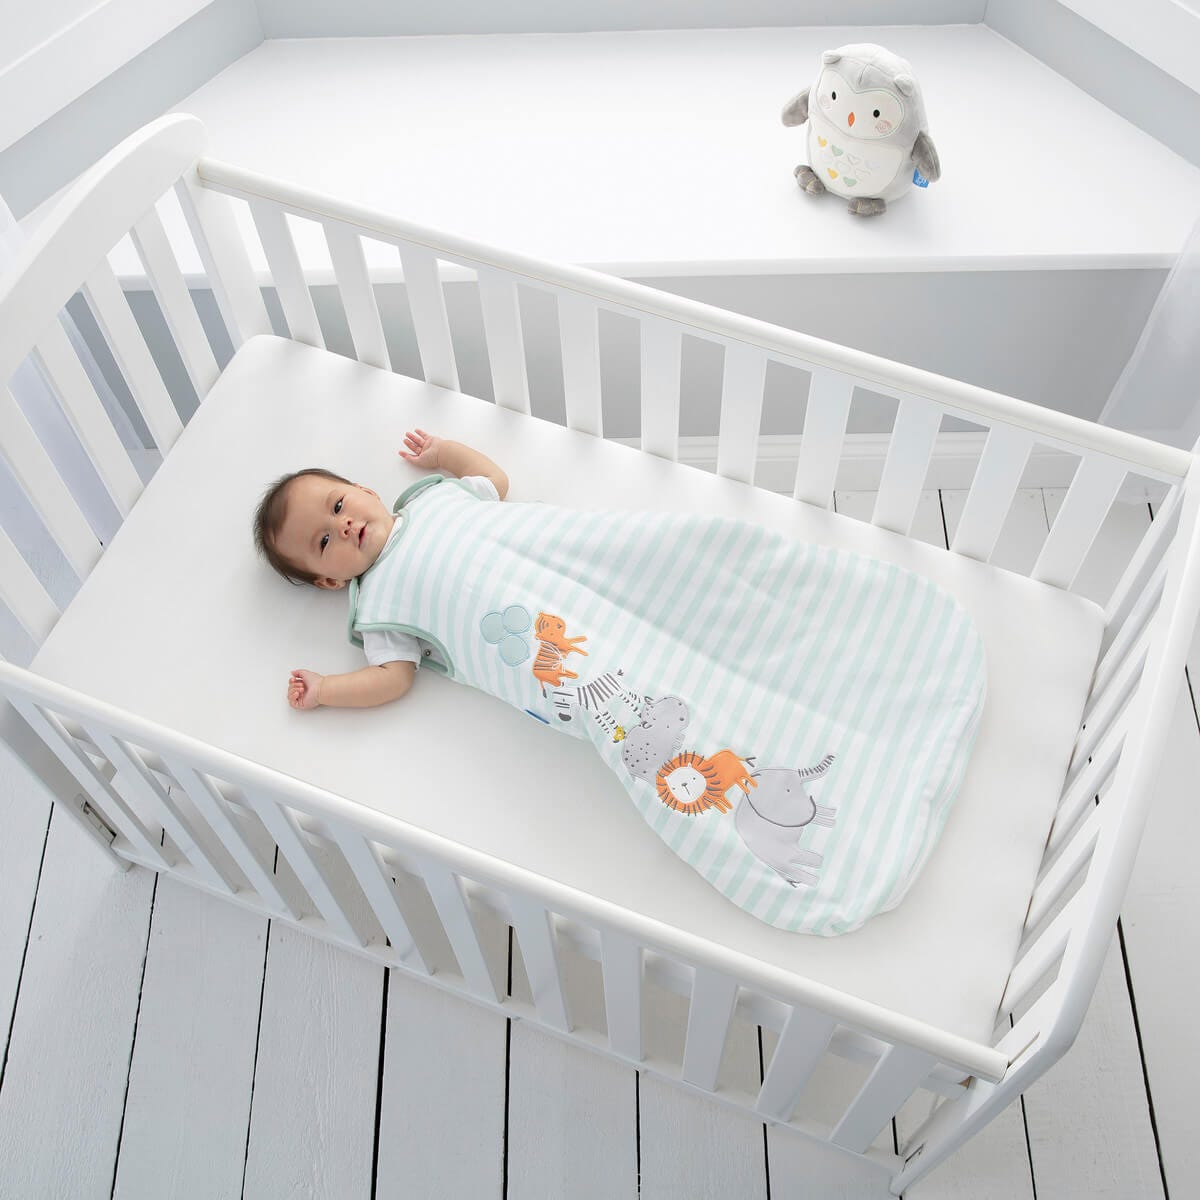 baby-lying-in-cot-wearing-jungle-stack-grobag